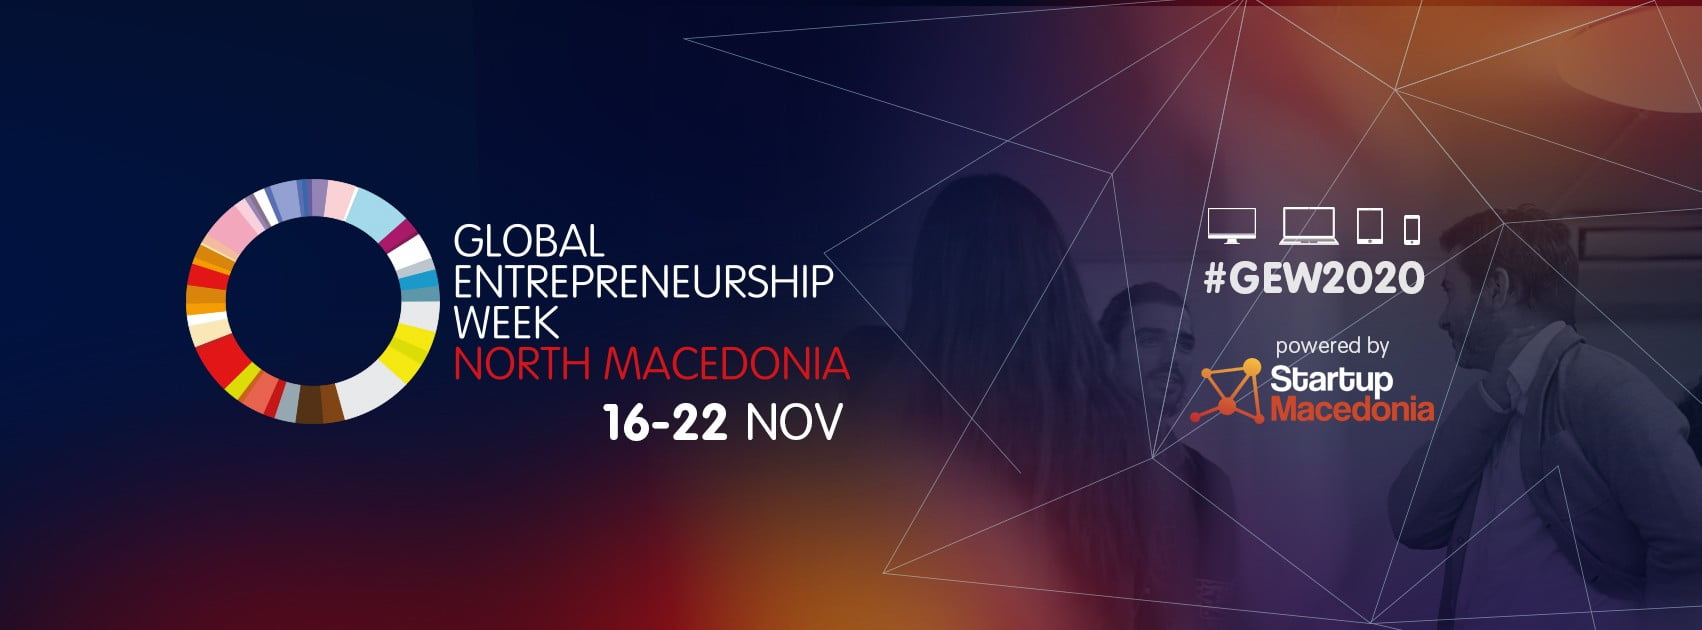 Global Entrepreneurship Week (GEW) 2020-ARNO participated with 2 events image